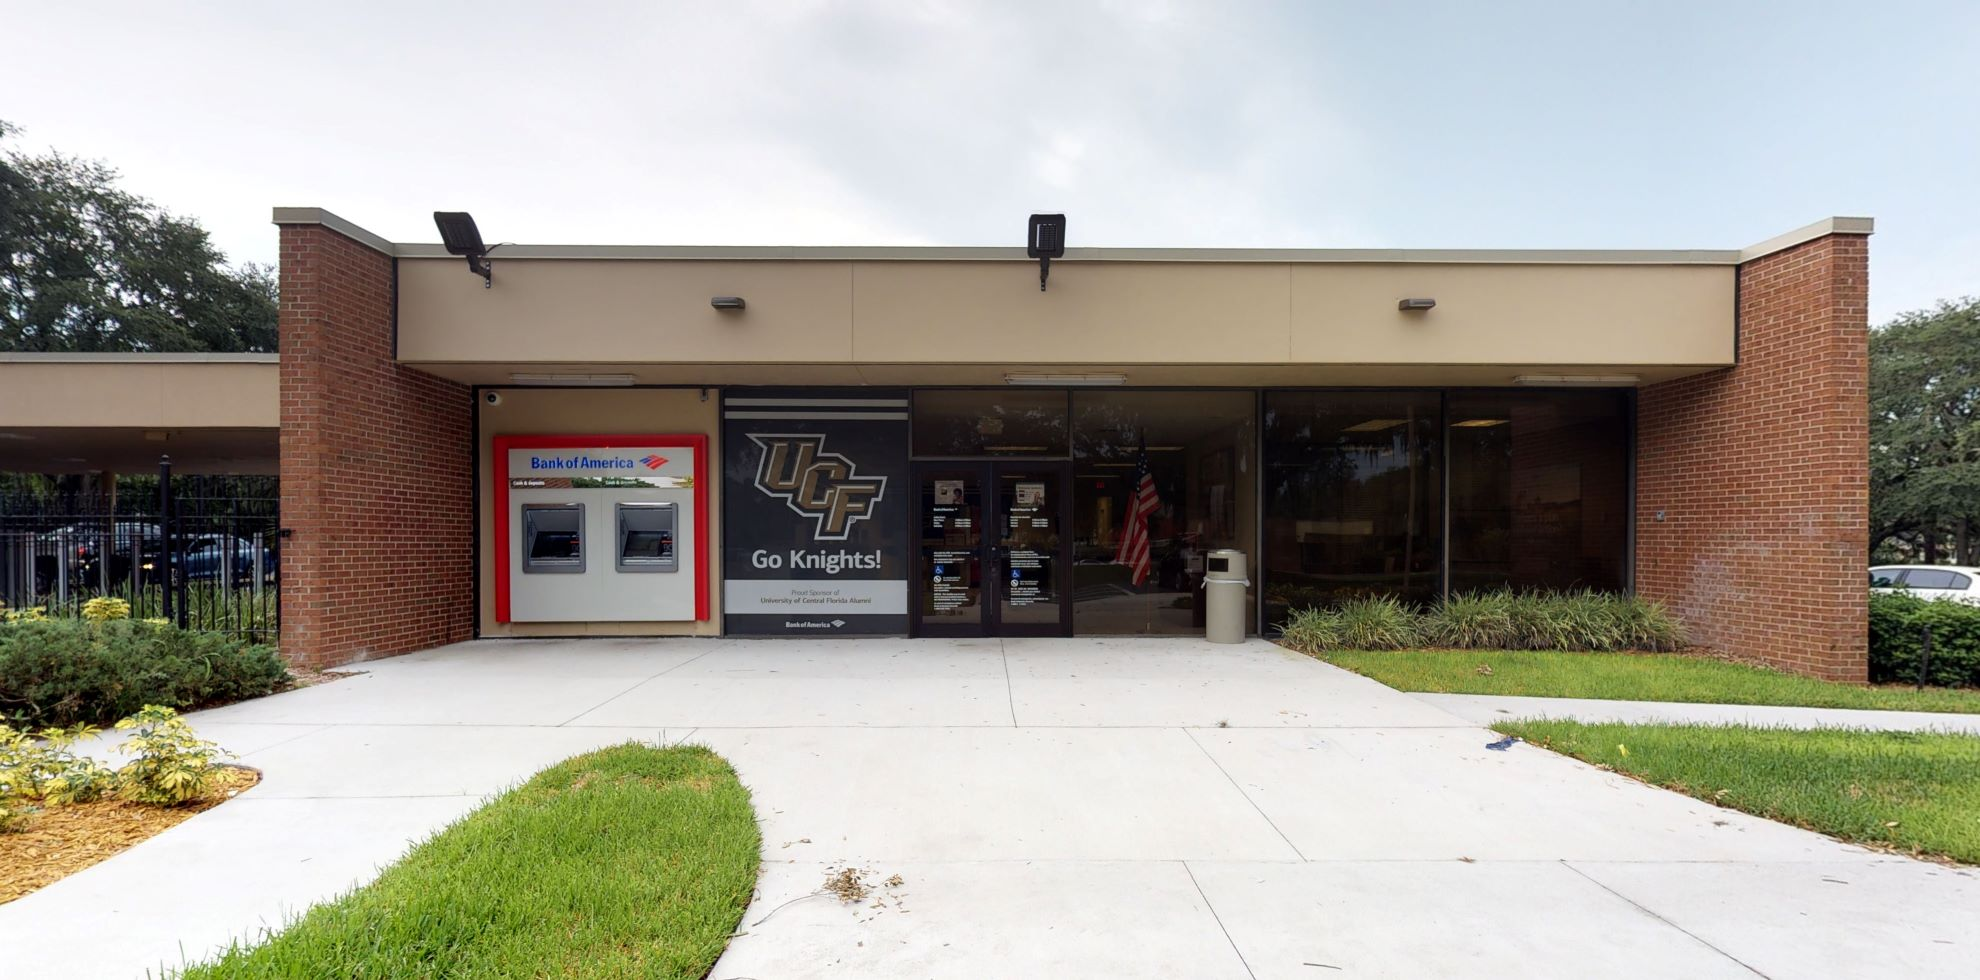 Bank of America financial center with drive-thru ATM | 11800 Research Pkwy, Orlando, FL 32826